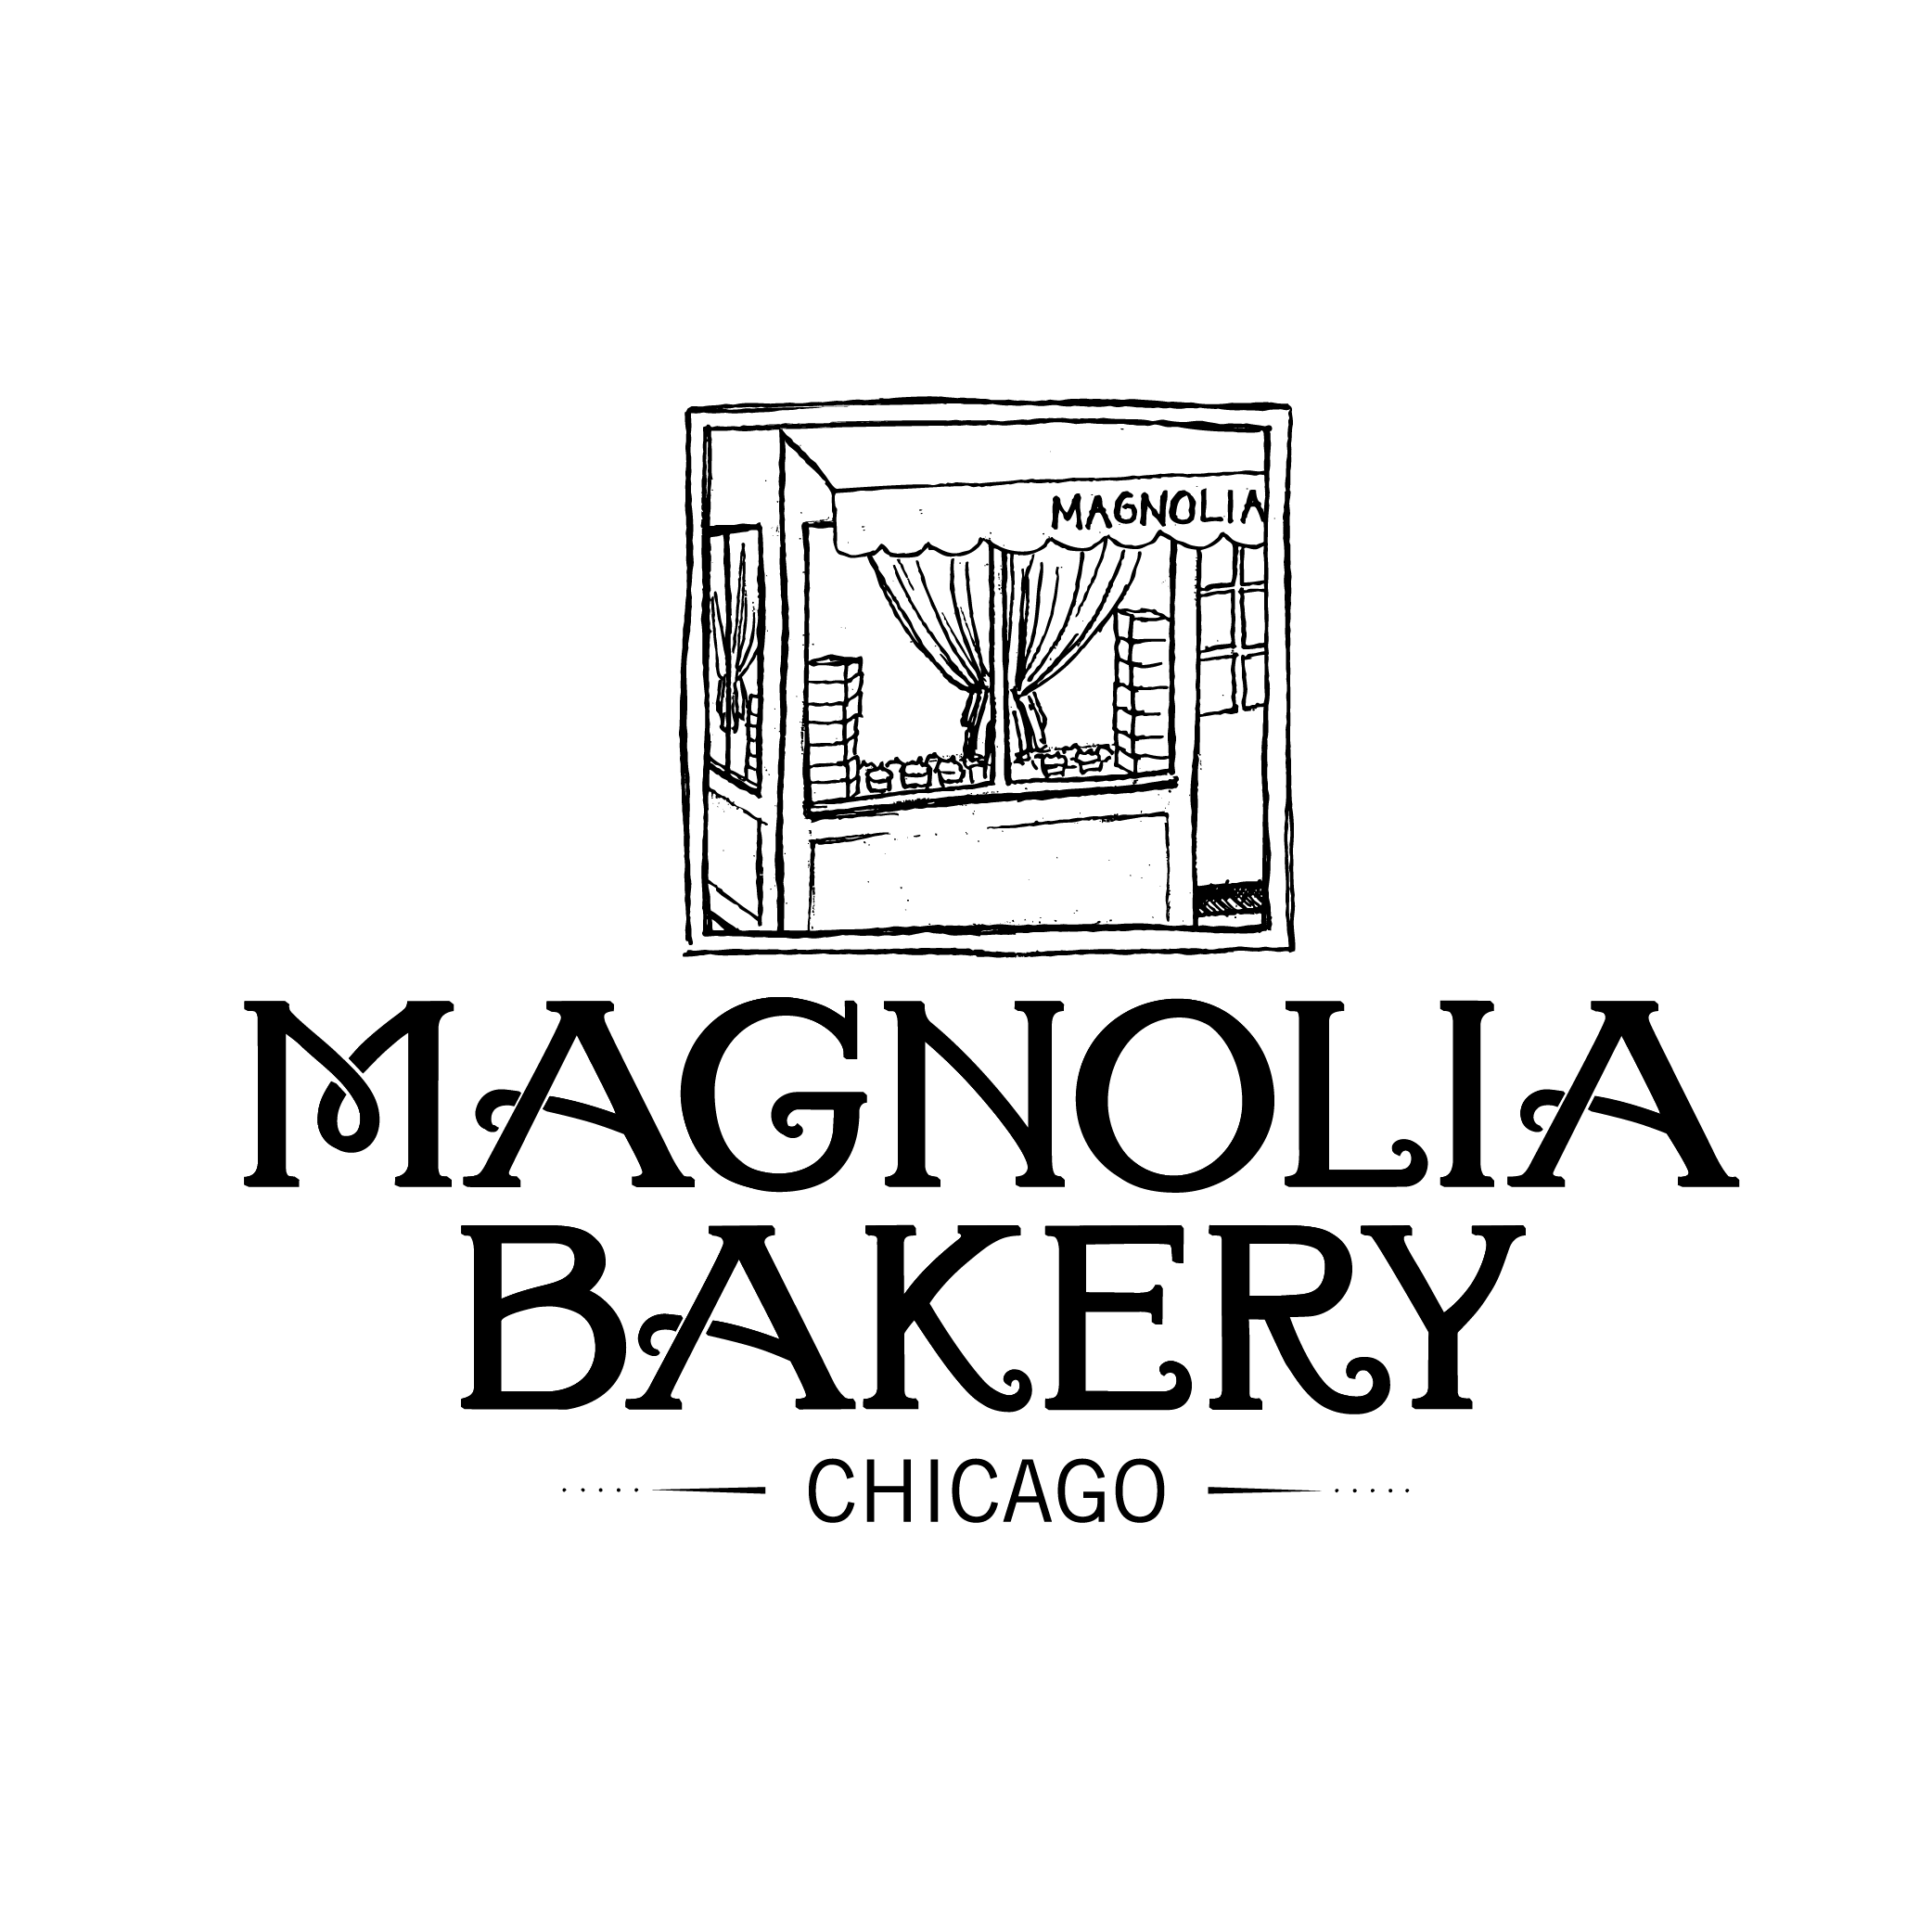 Magnolia_Logo_500px.png